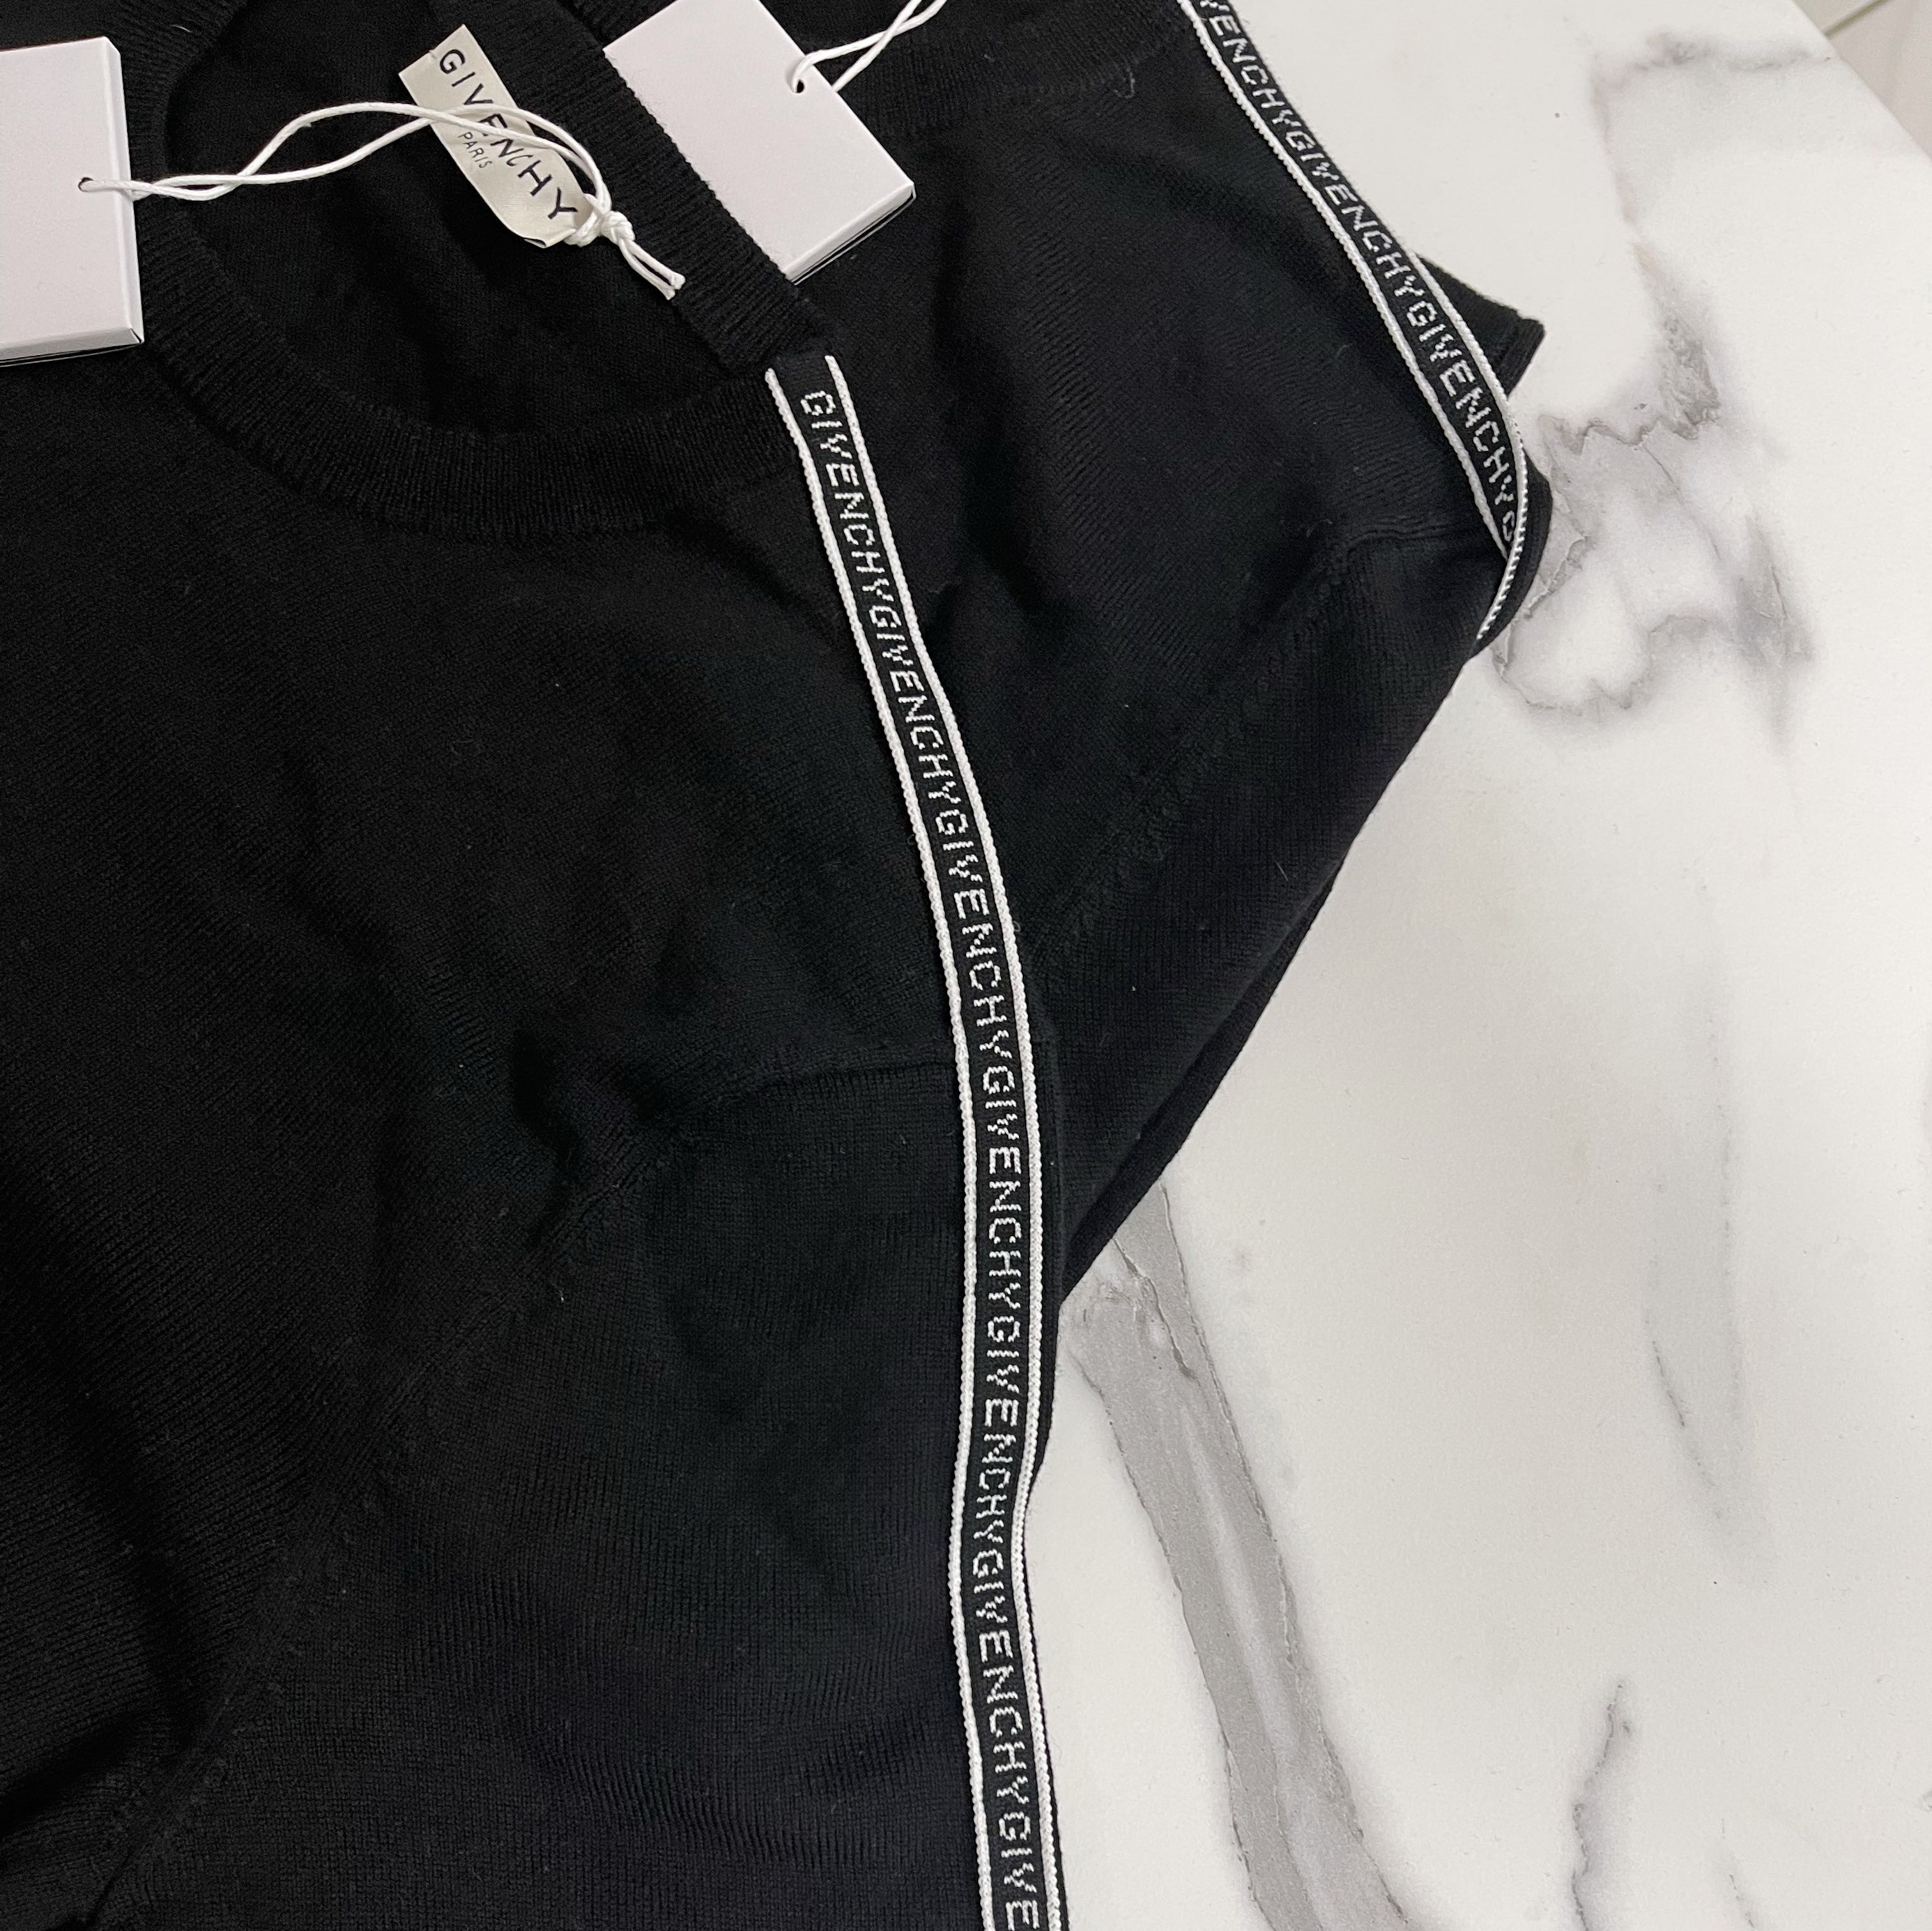 Givenchy sweater Givenchy2